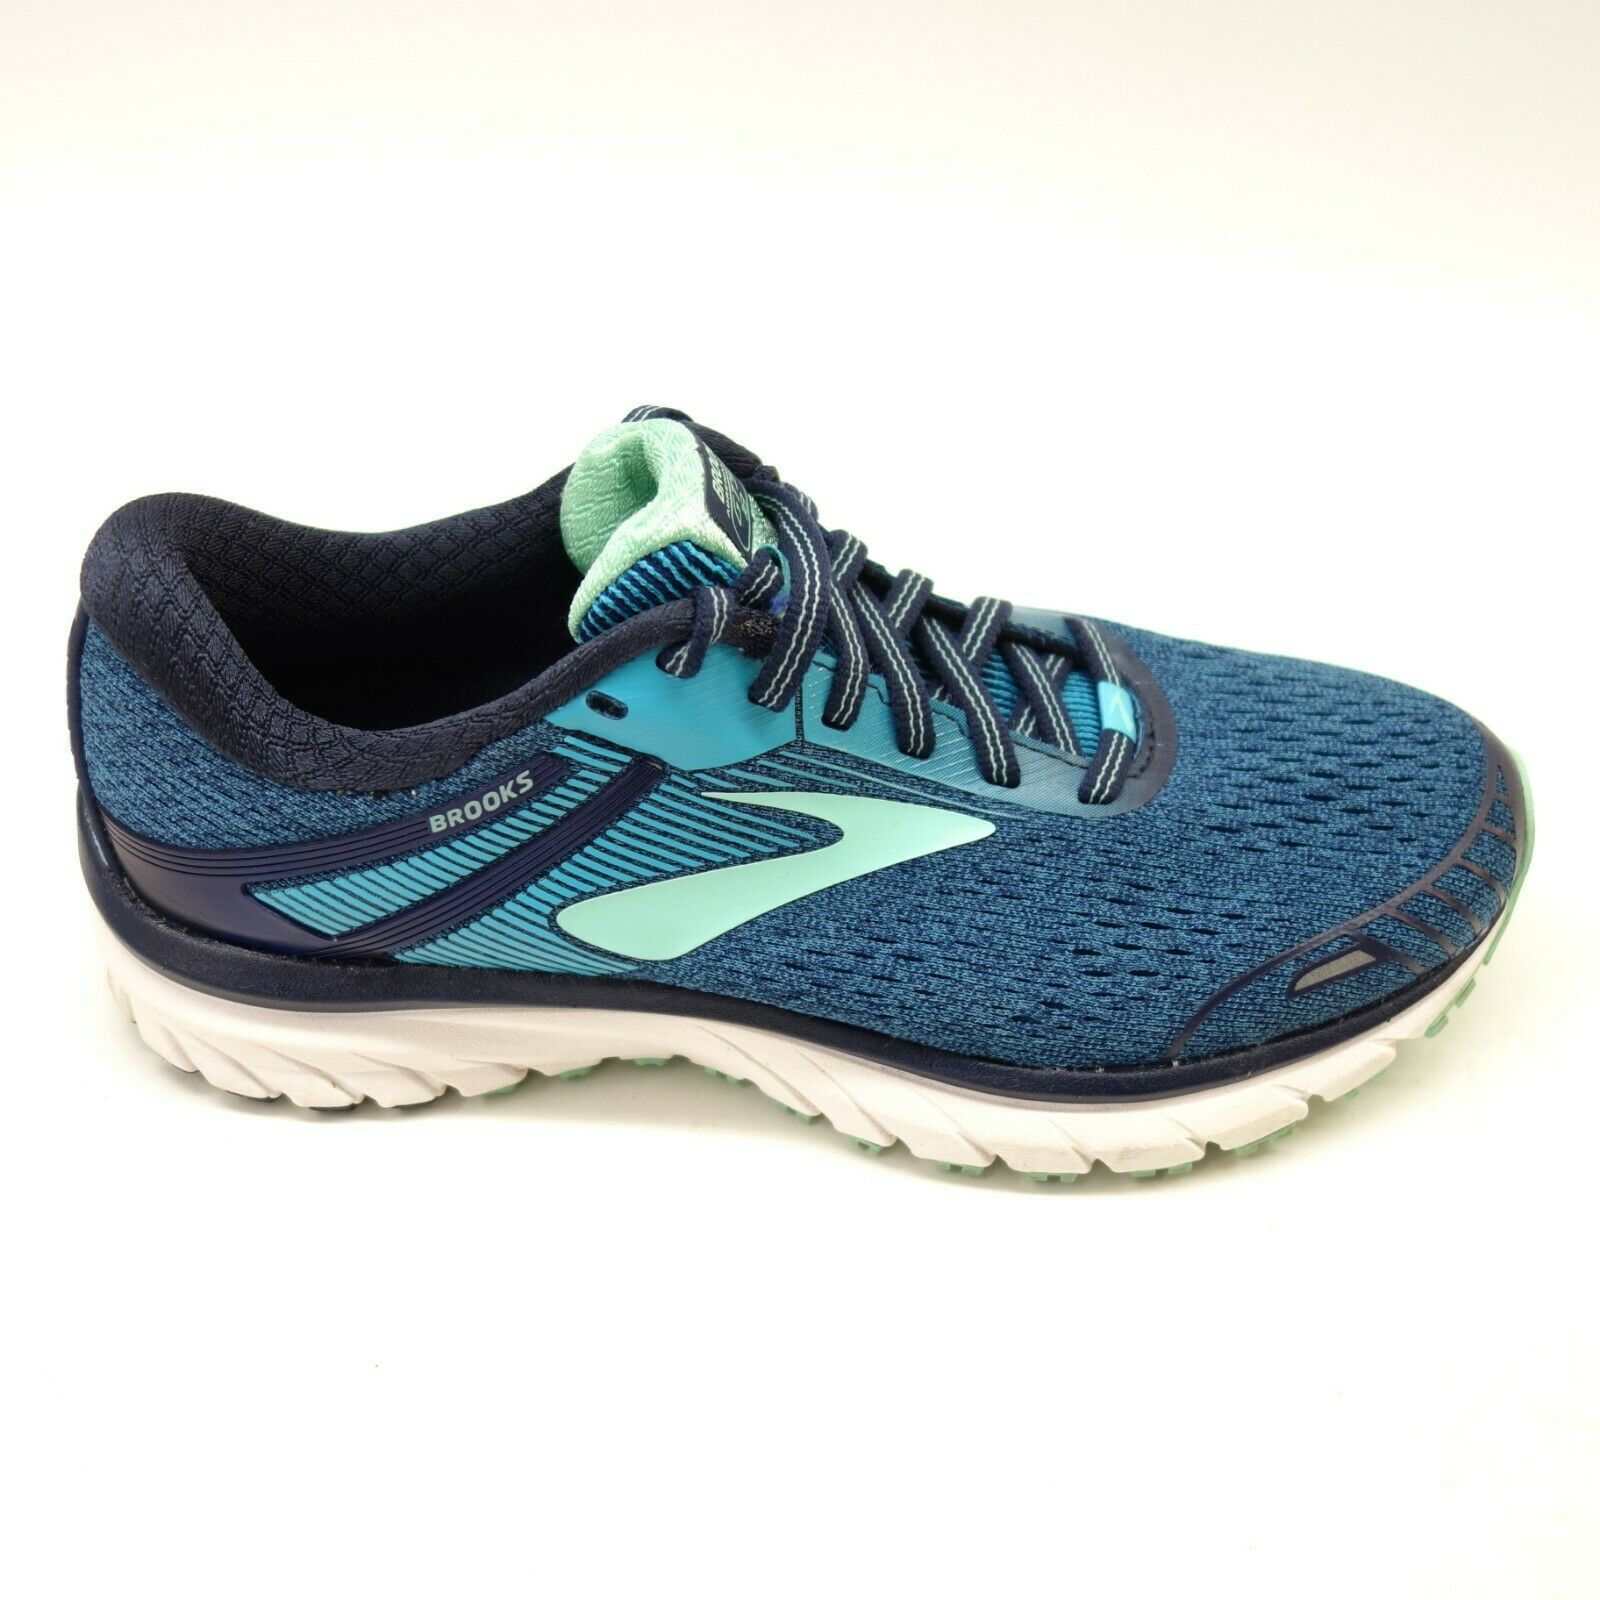 Brooks Womens Adrenaline GTS 18 bluee Athletic DNA Road Running shoes US 7